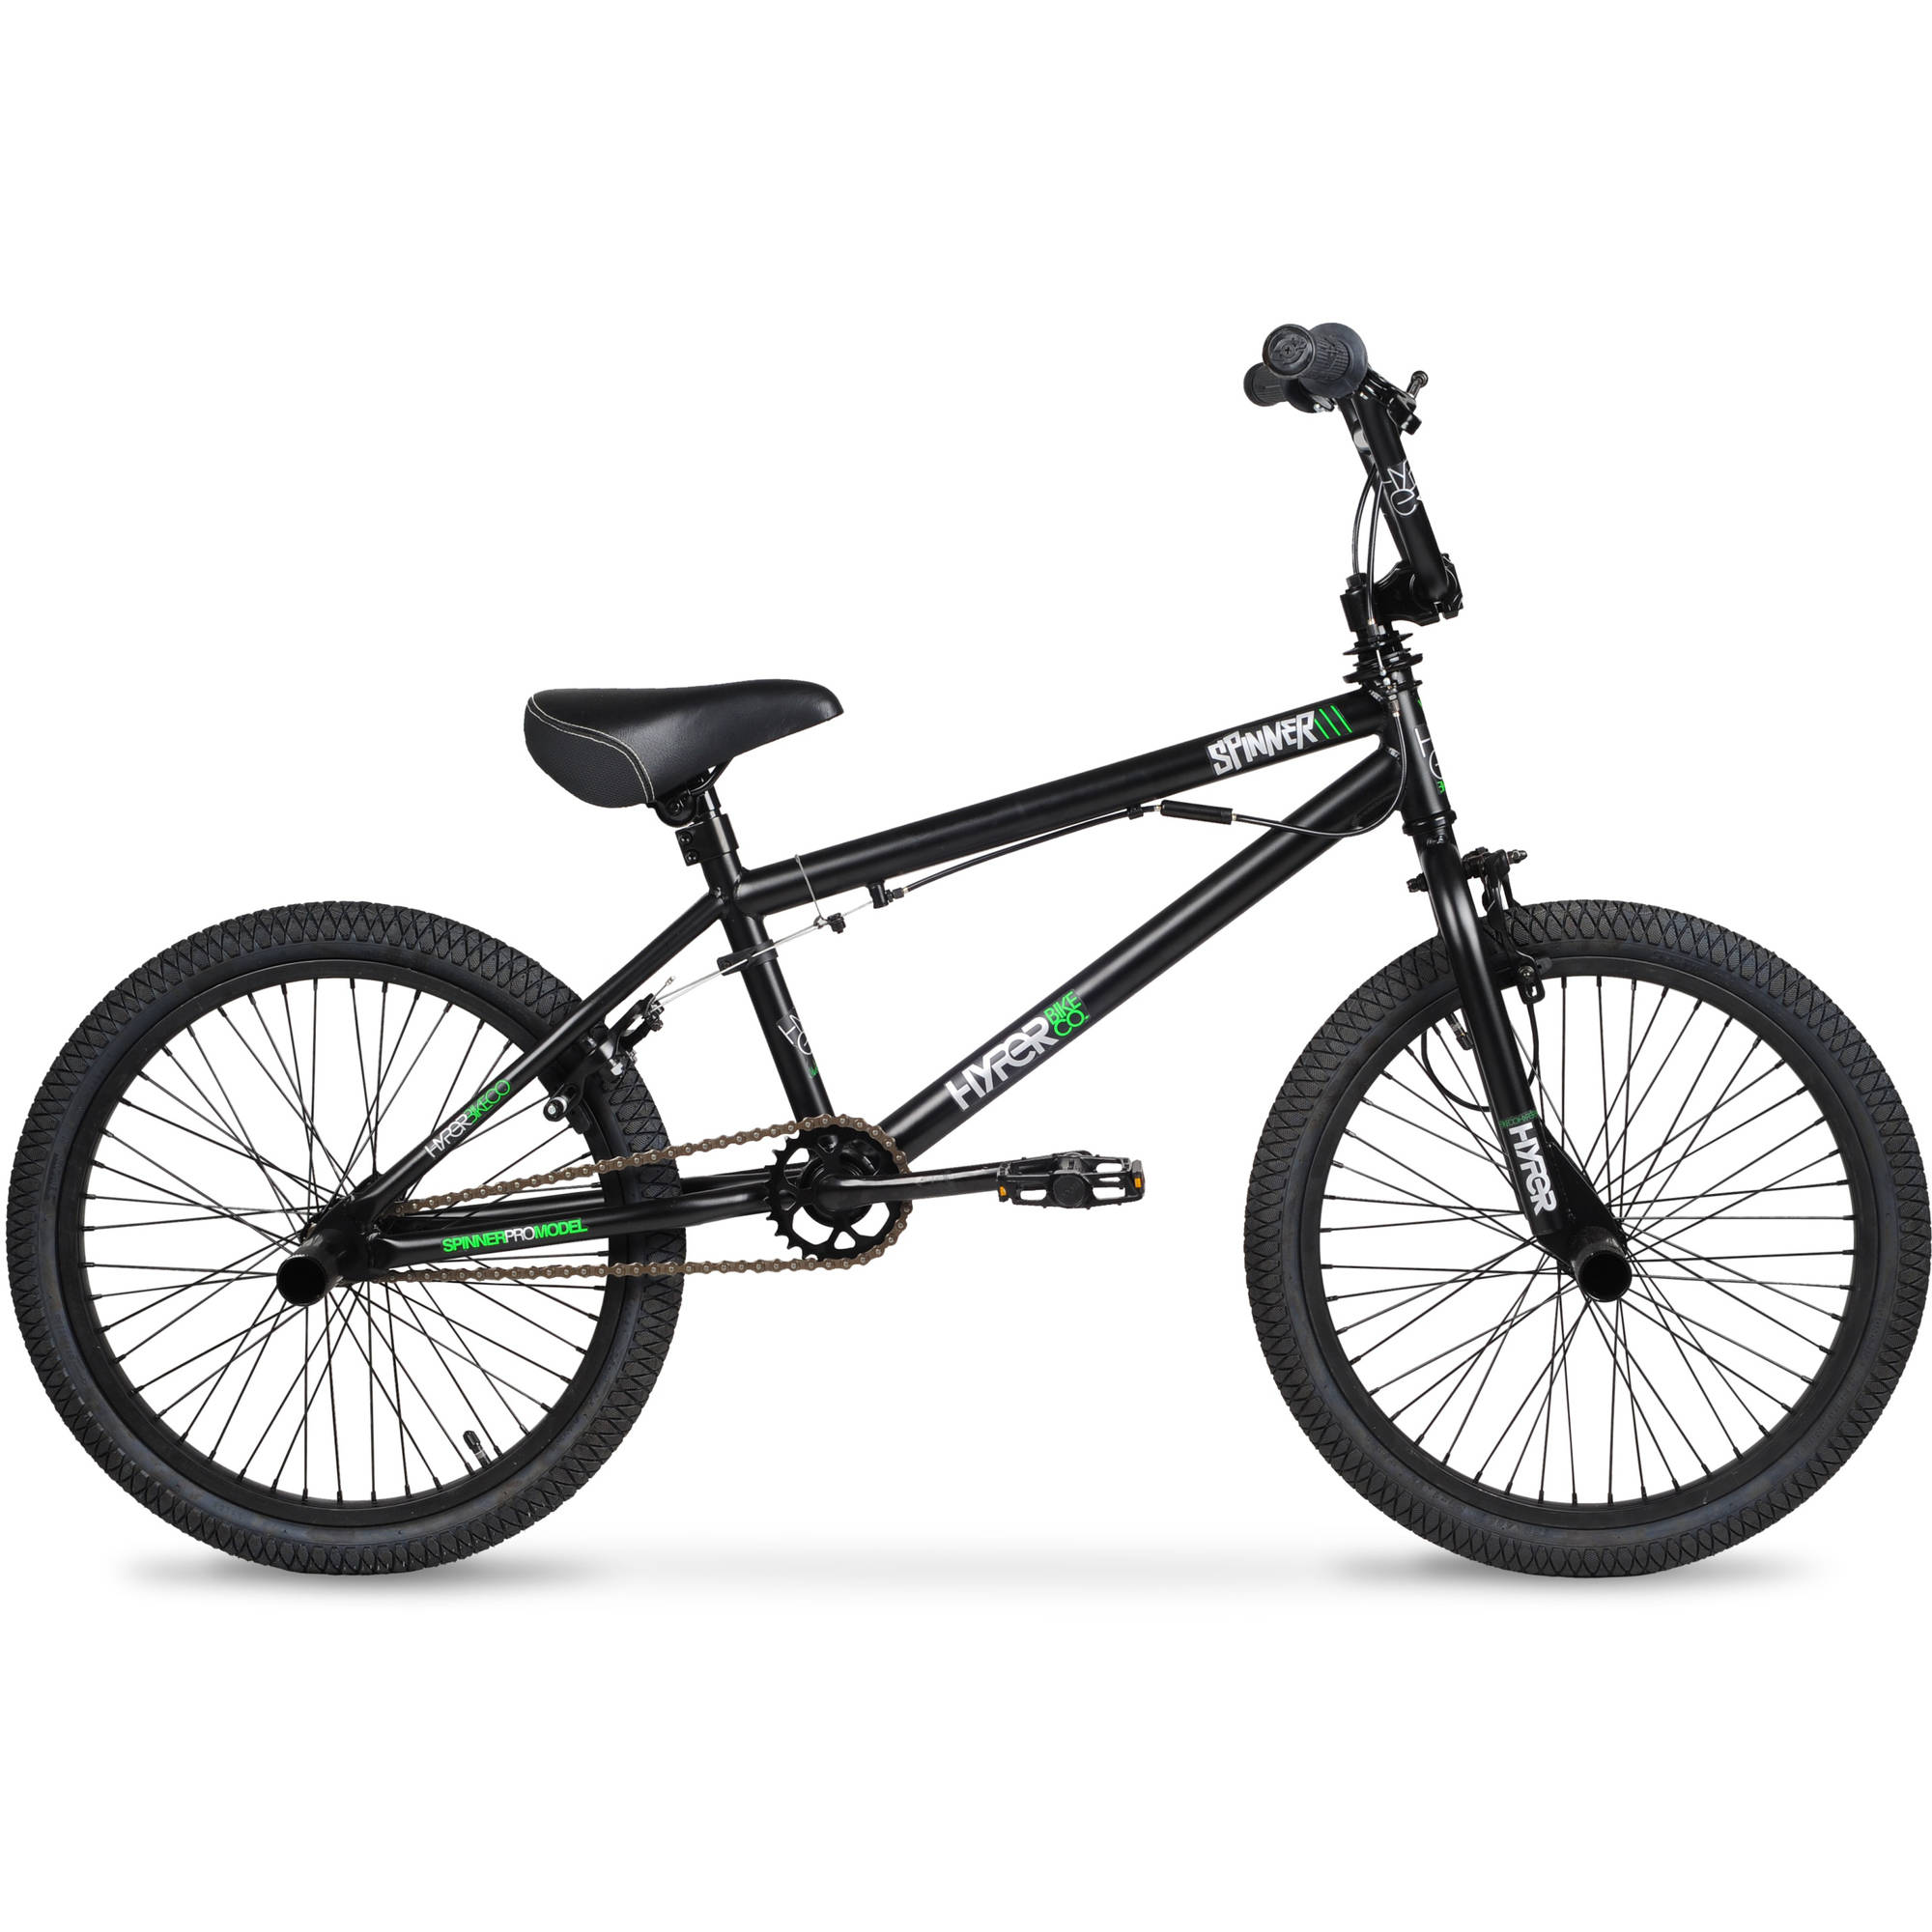 "20"" Hyper Spinner Pro Boys' BMX Bike, Black/Green"